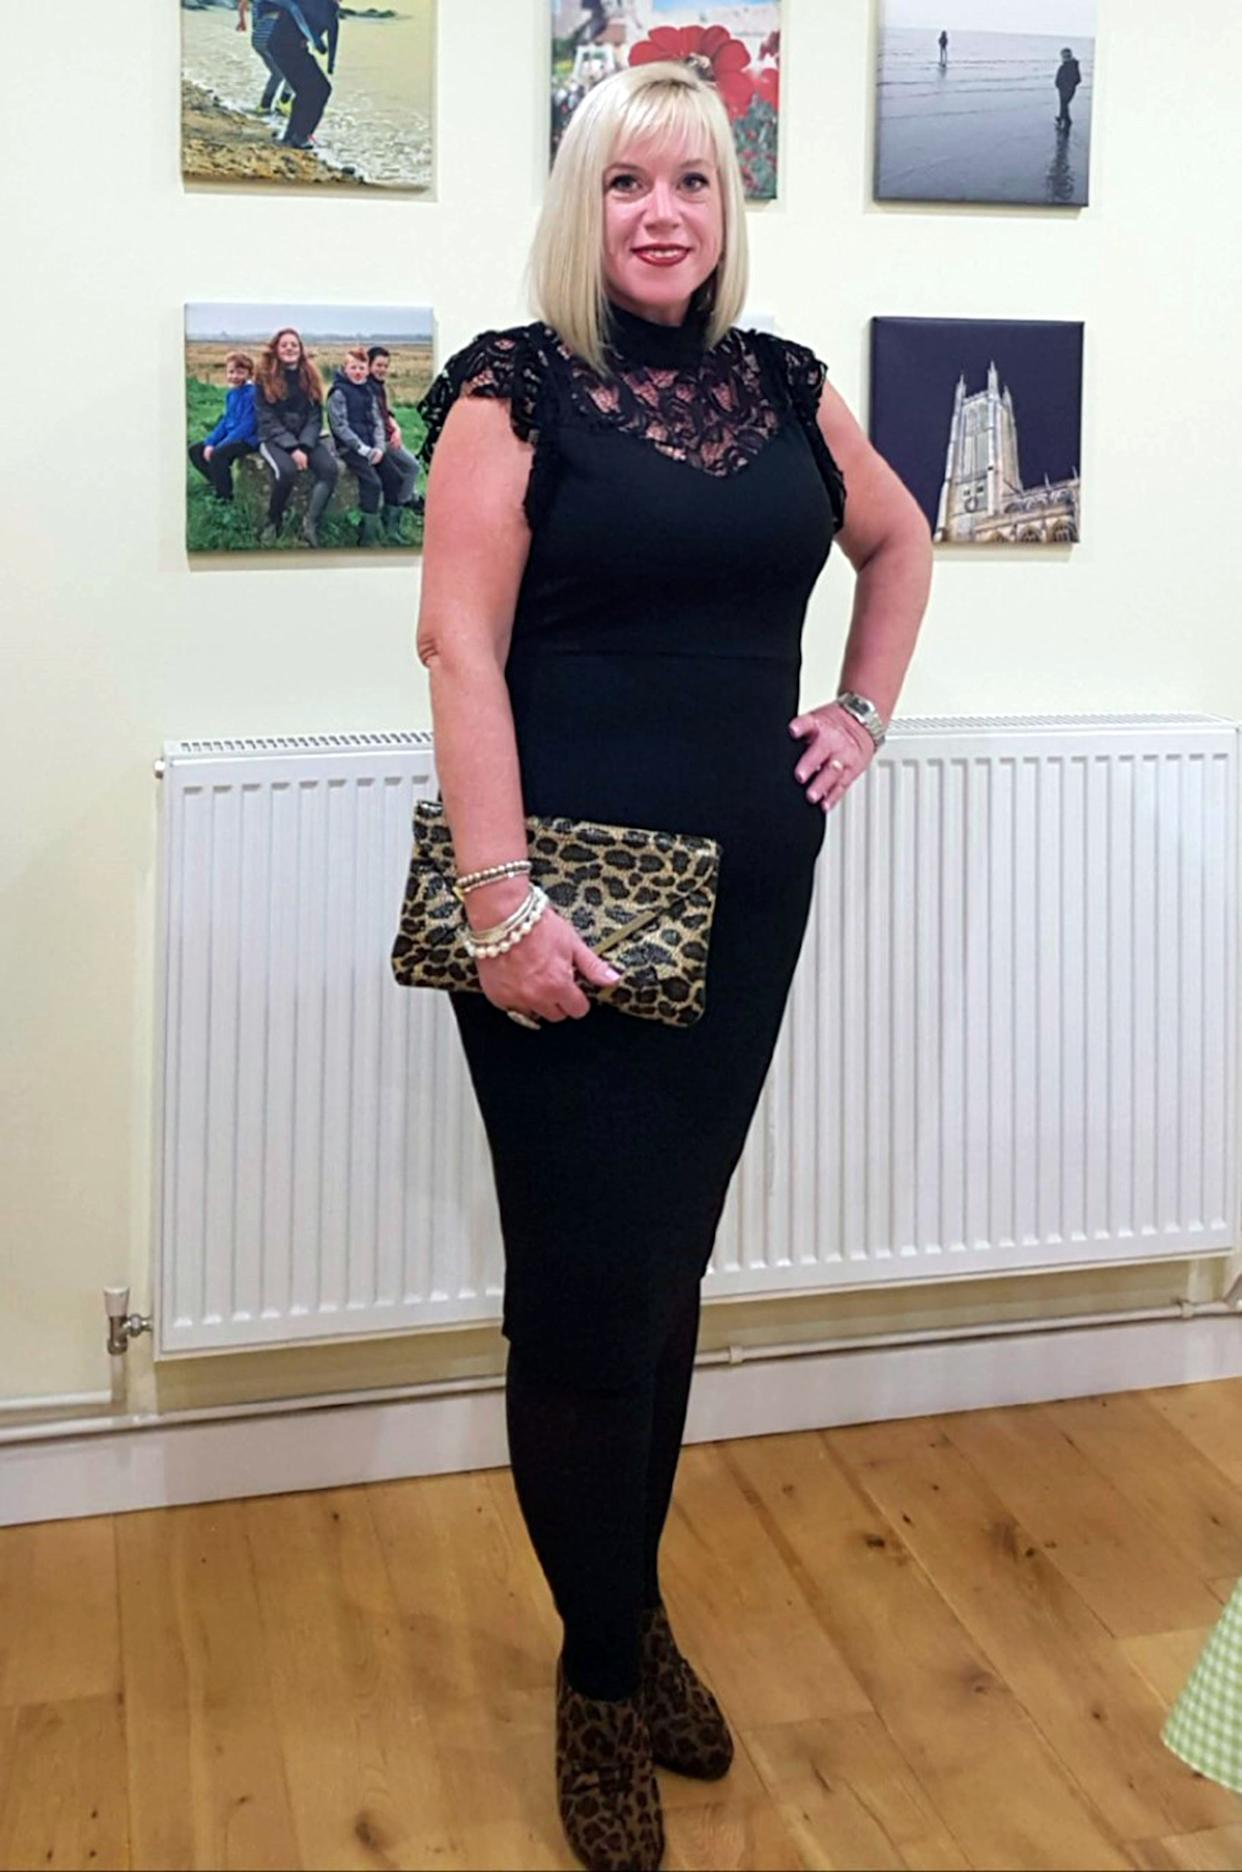 With the support of her family, the mother-of-four lost six stone [Photo: Caters]